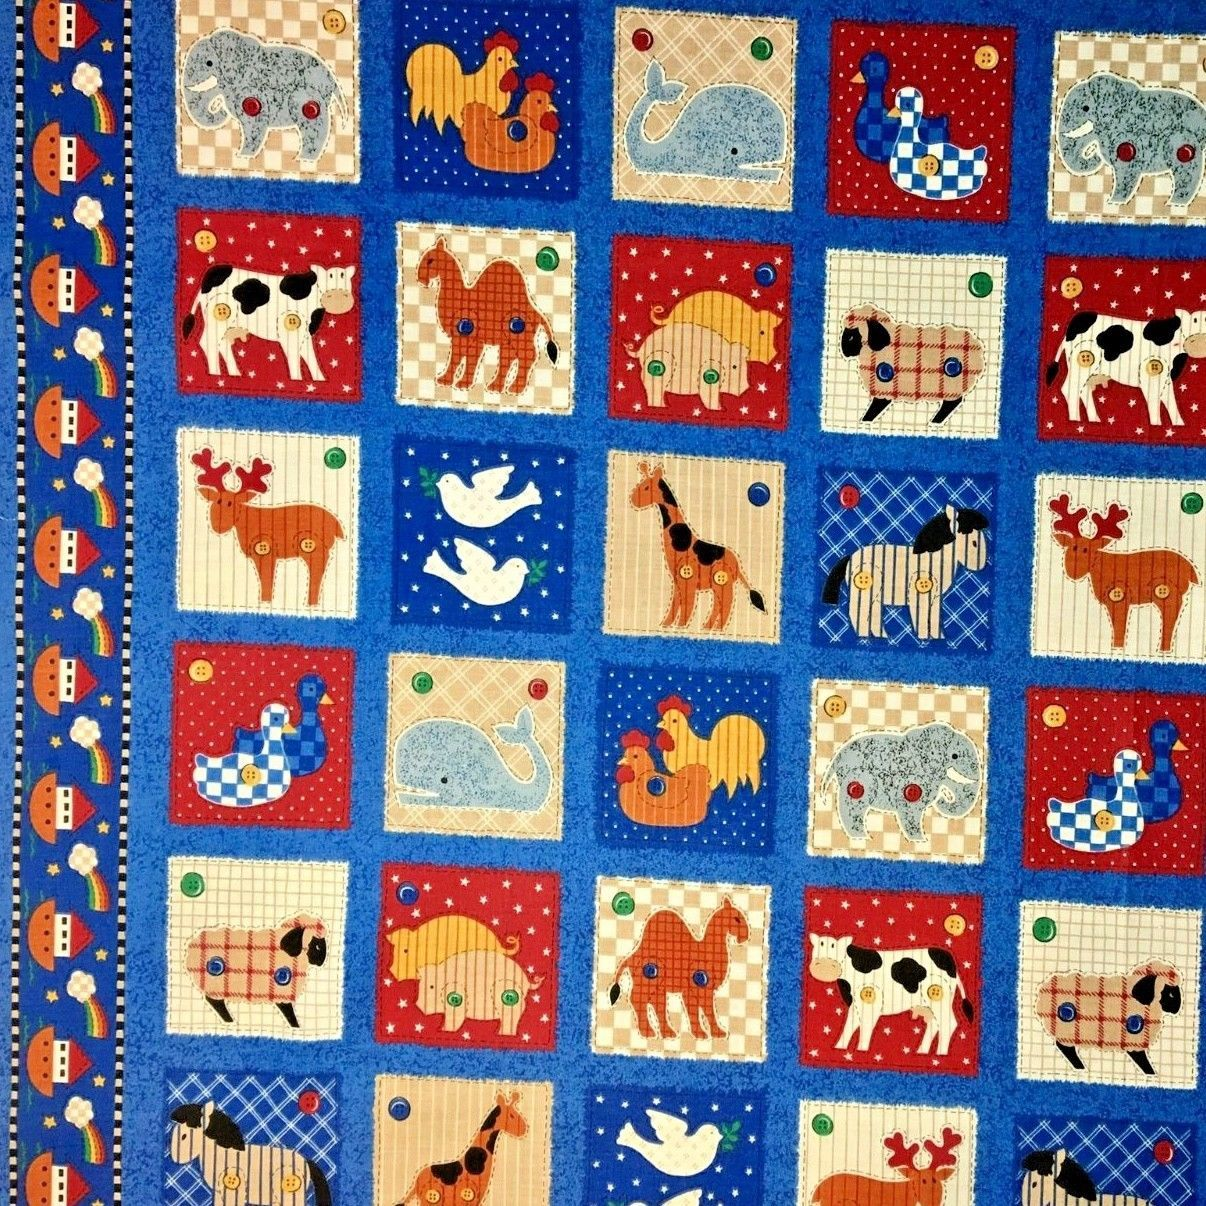 Noahs Ark Quilting Fabric Animal Squares and Border Fabric Traditions 3/4 Yard